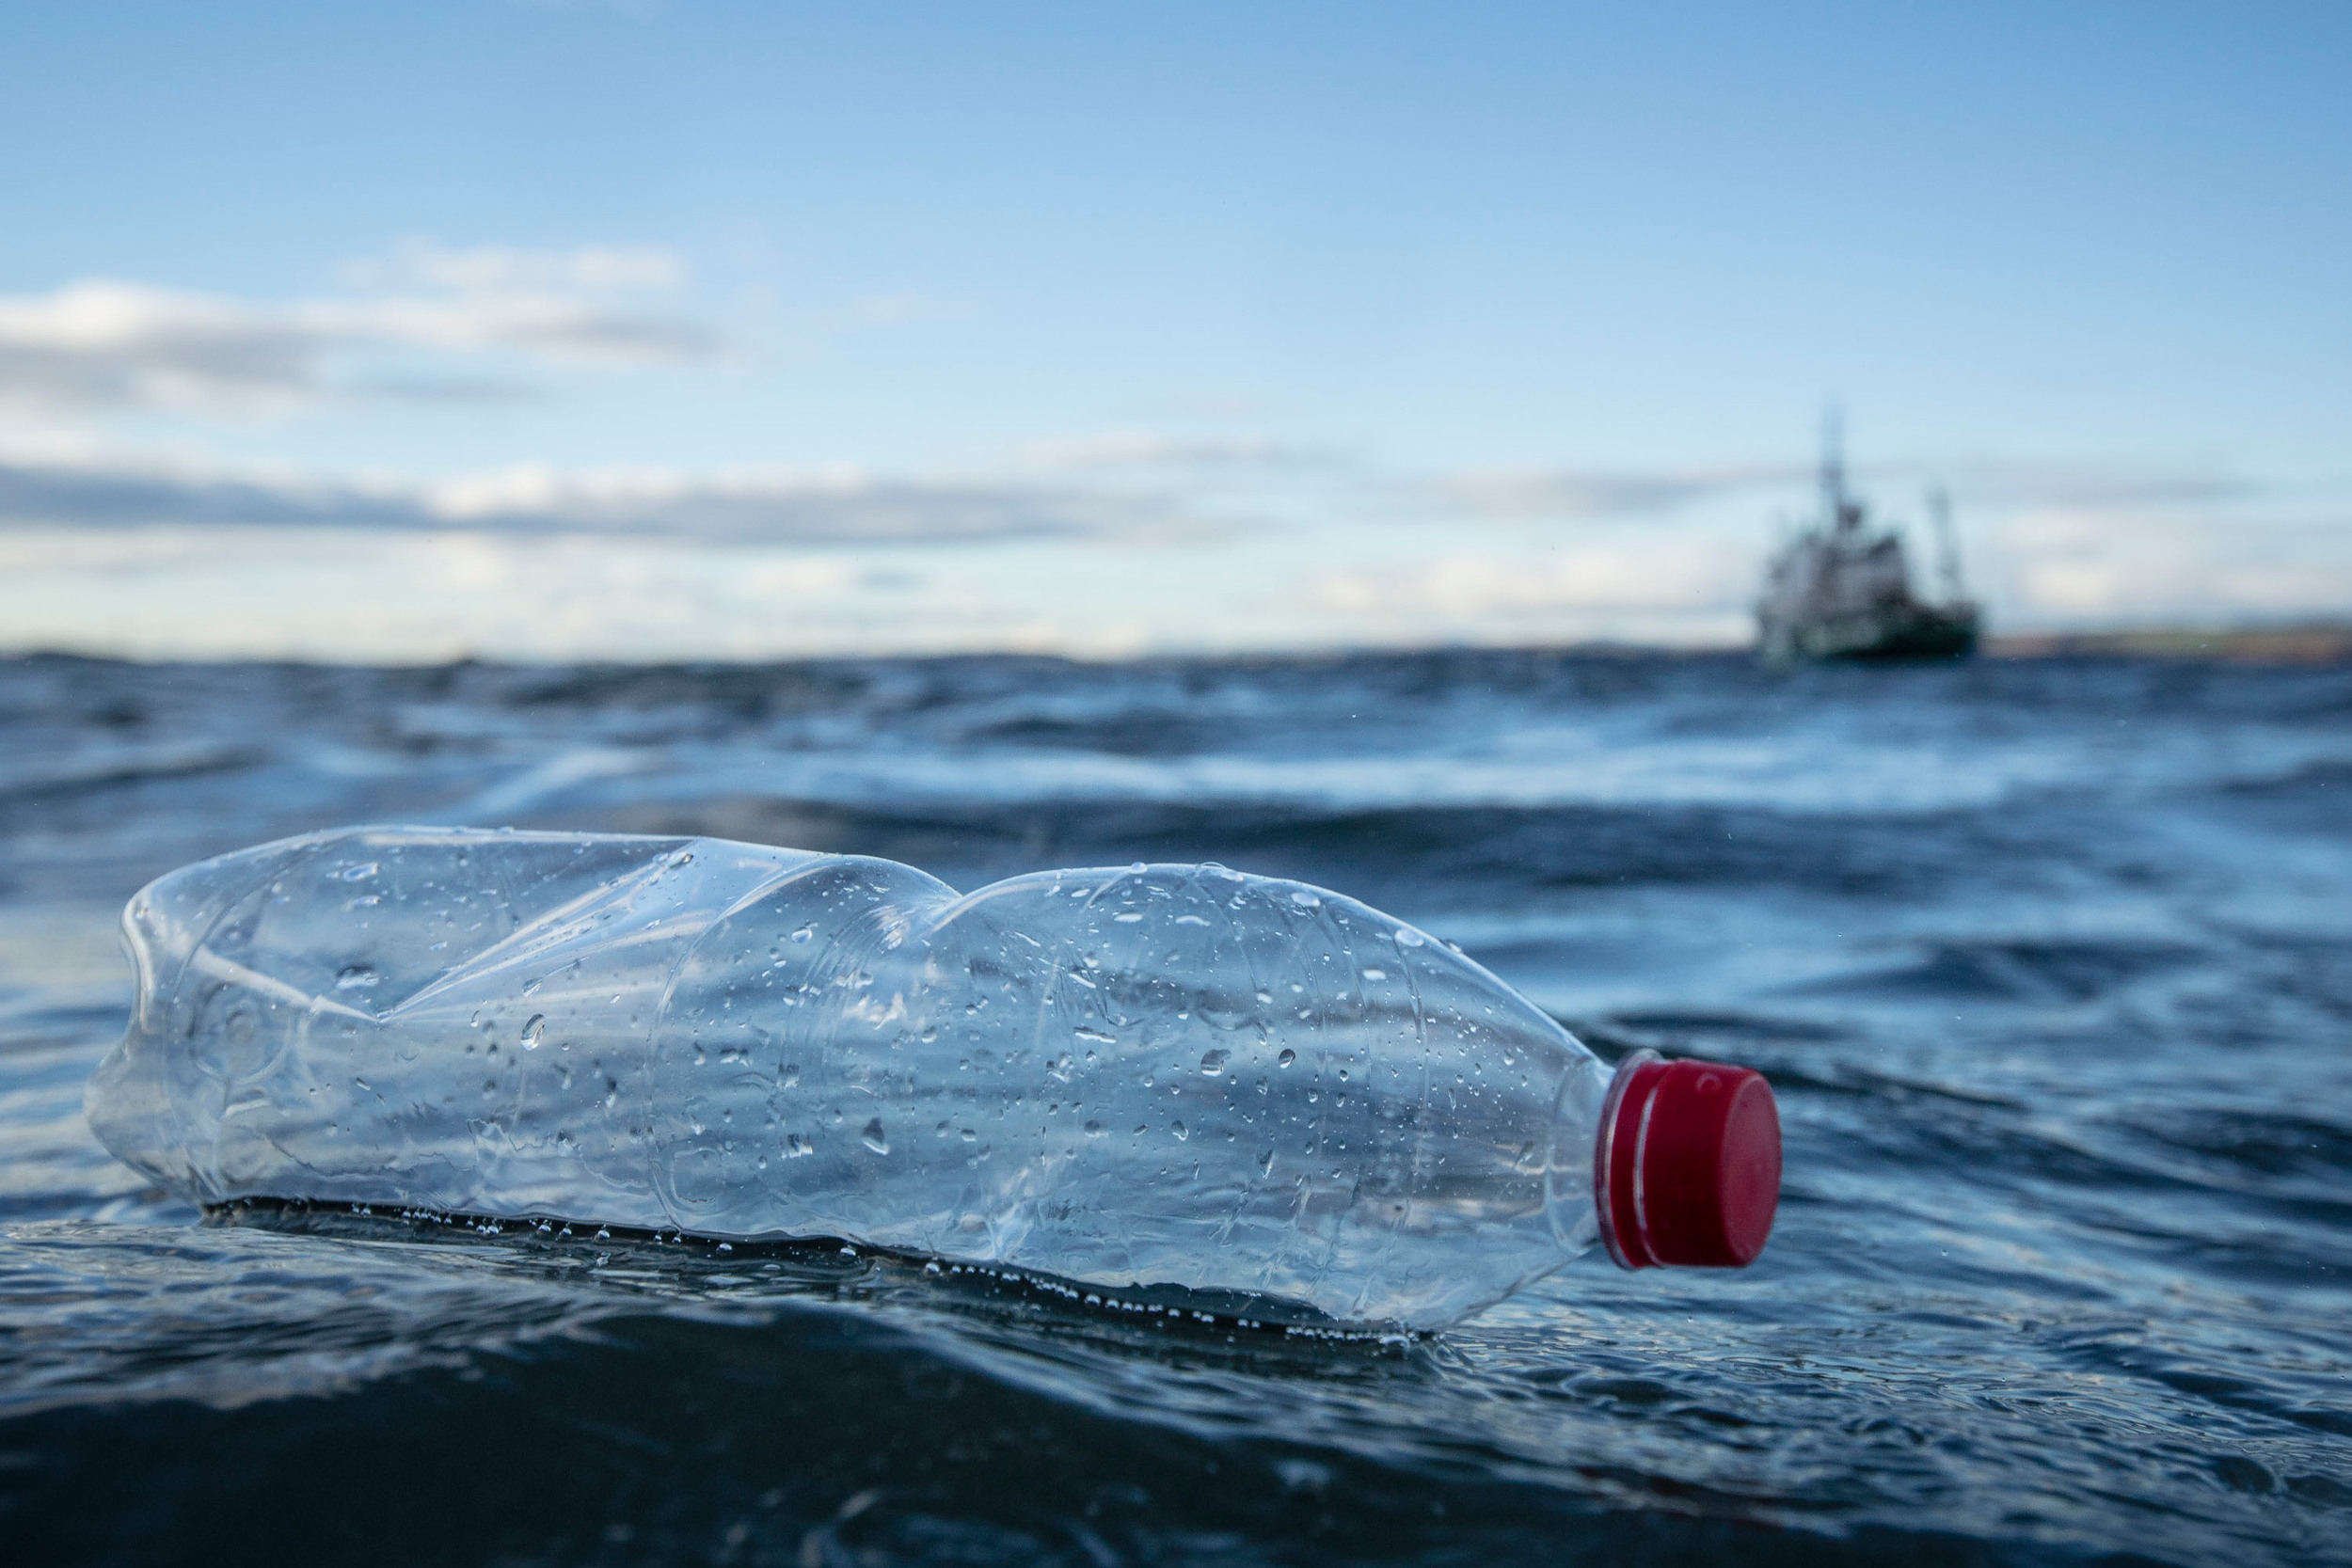 Plastic bottle in the water on a beach with a boat in the background